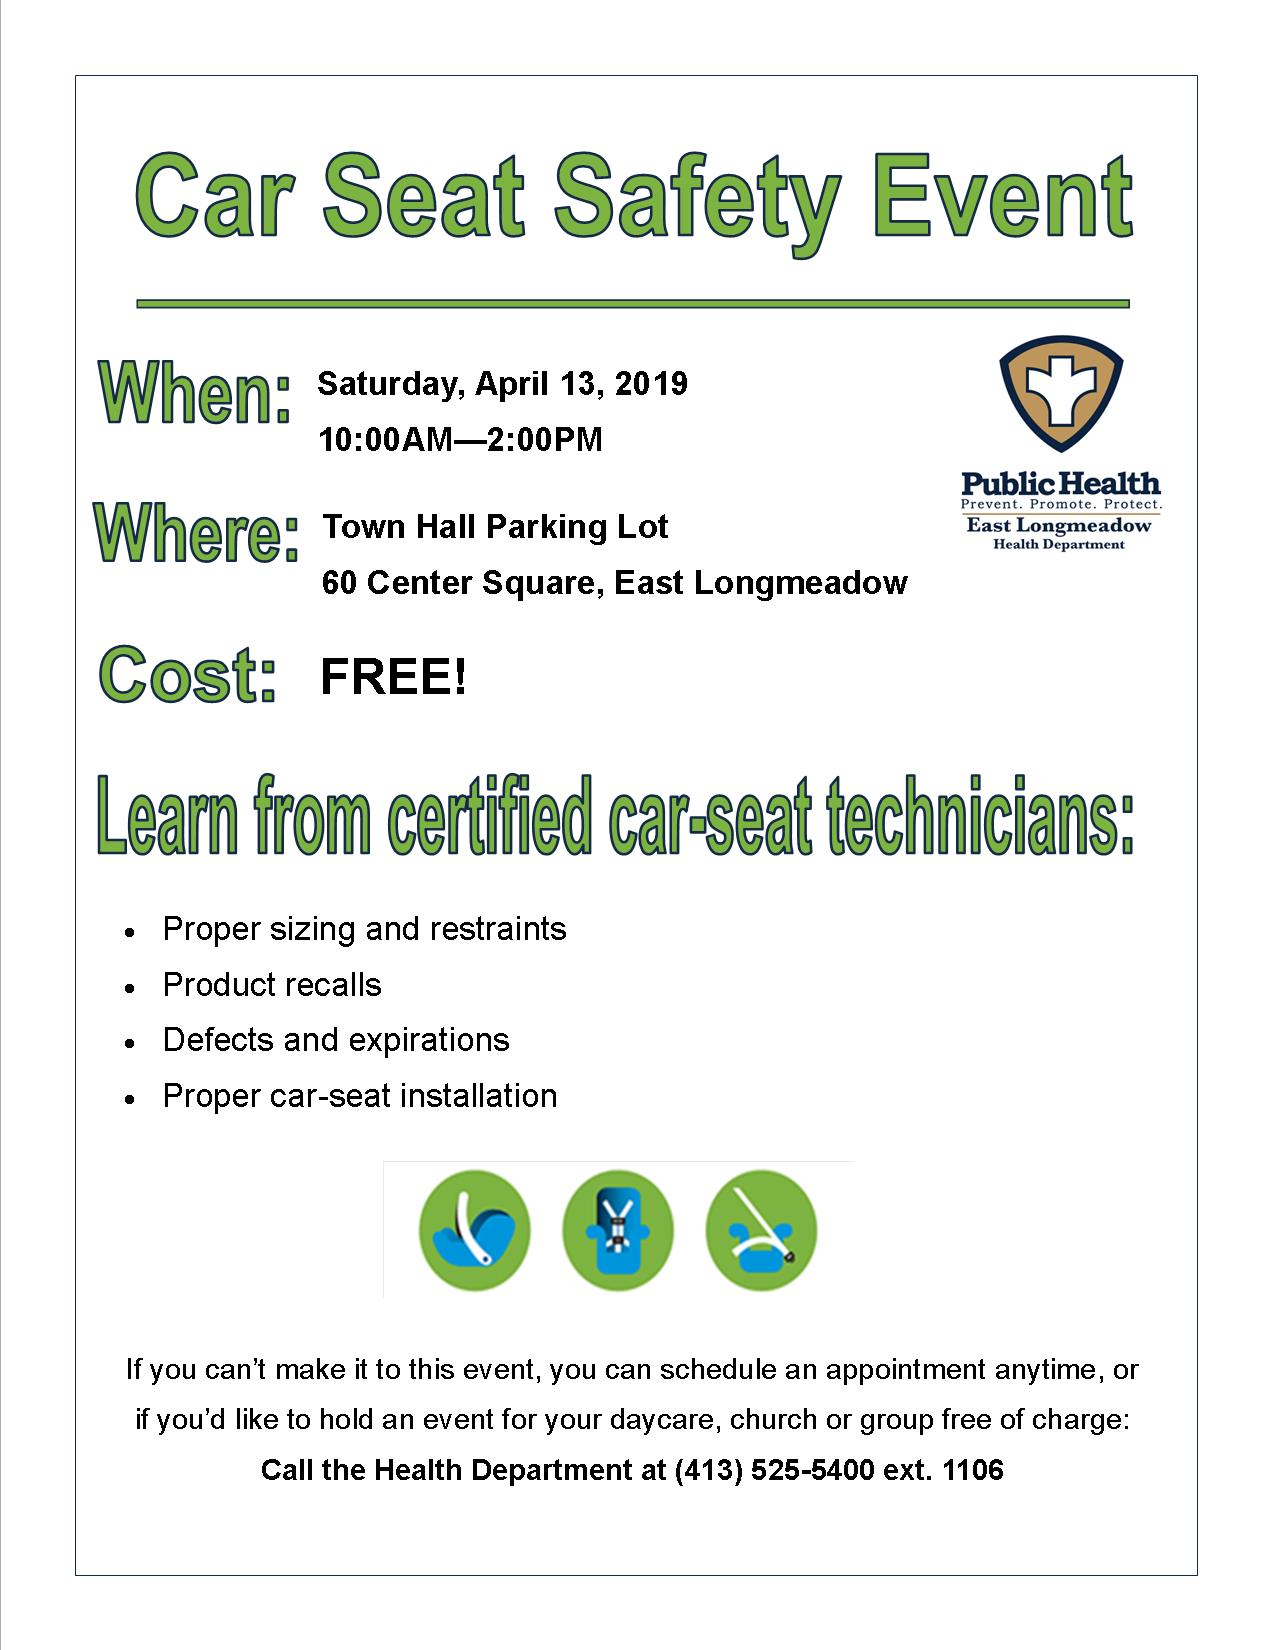 Car Seat Safety Check Event 0413 2019